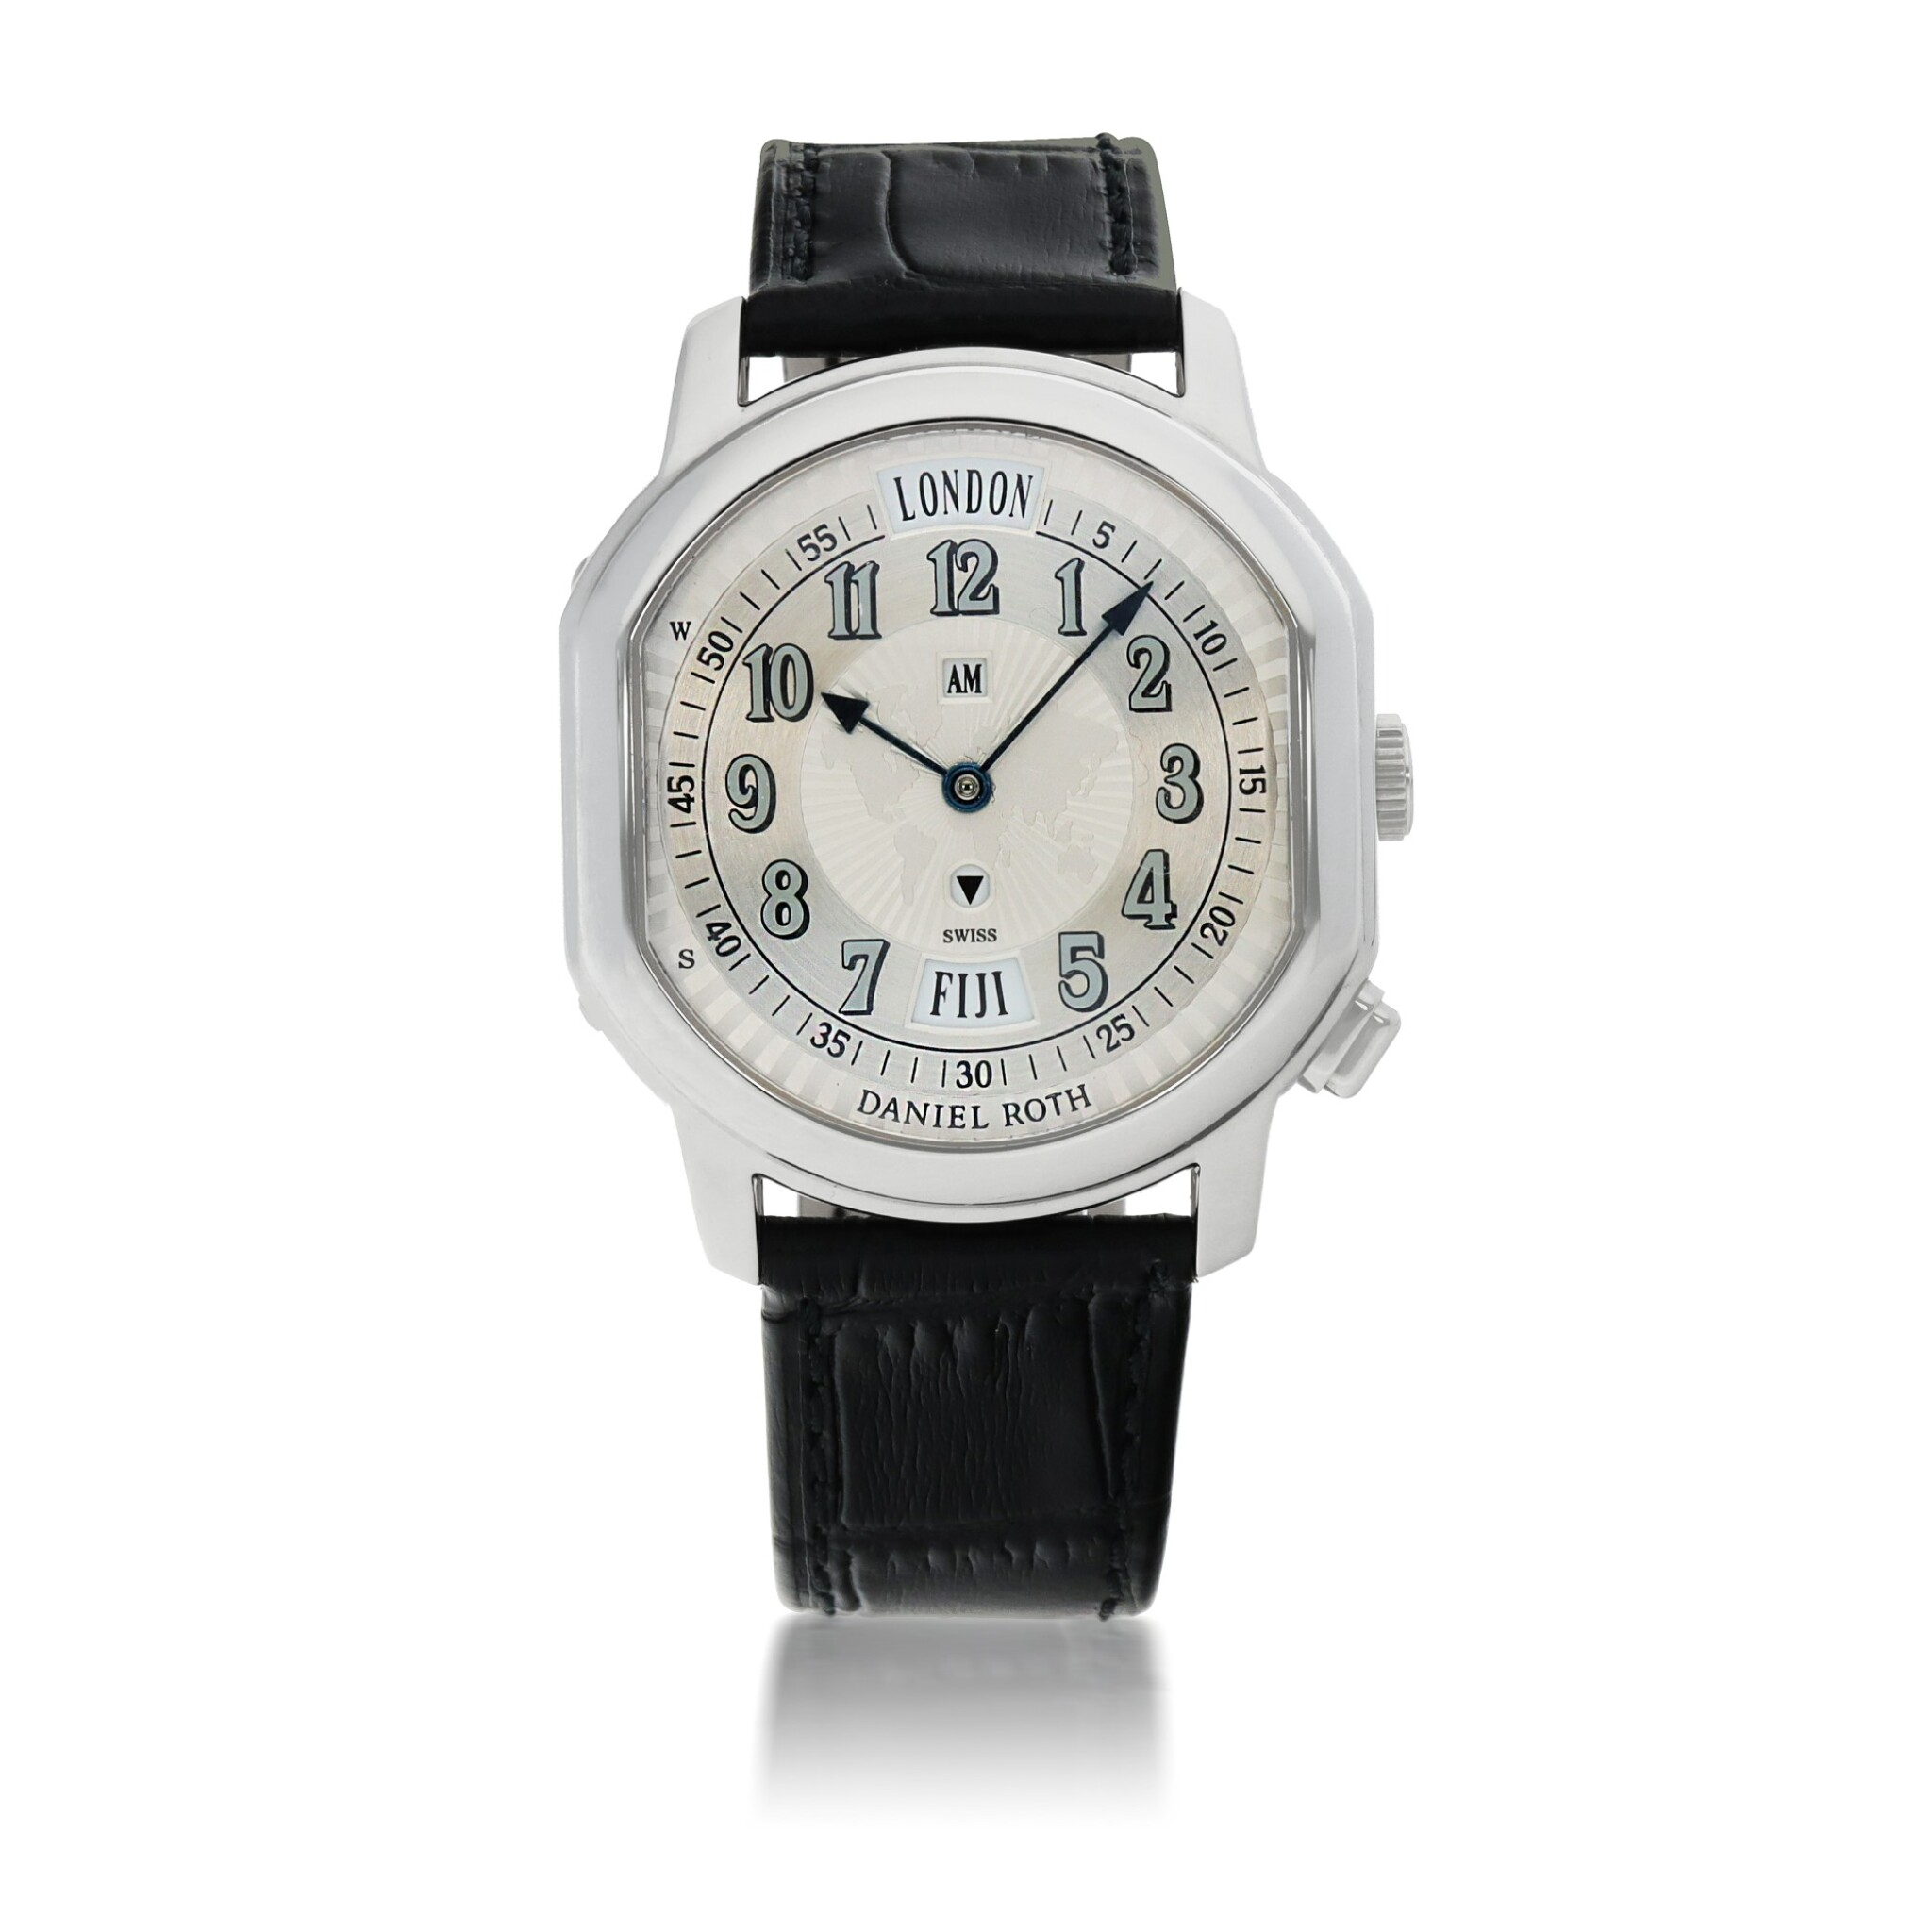 View full screen - View 1 of Lot 668. DANIEL ROTH    METROPOLITAN 24 CITIES, REF 875.X.10   STAINLESS STEEL WORLD-TIME WRISTWATCH WITH AM/PM INDICATION   CIRCA 2005.